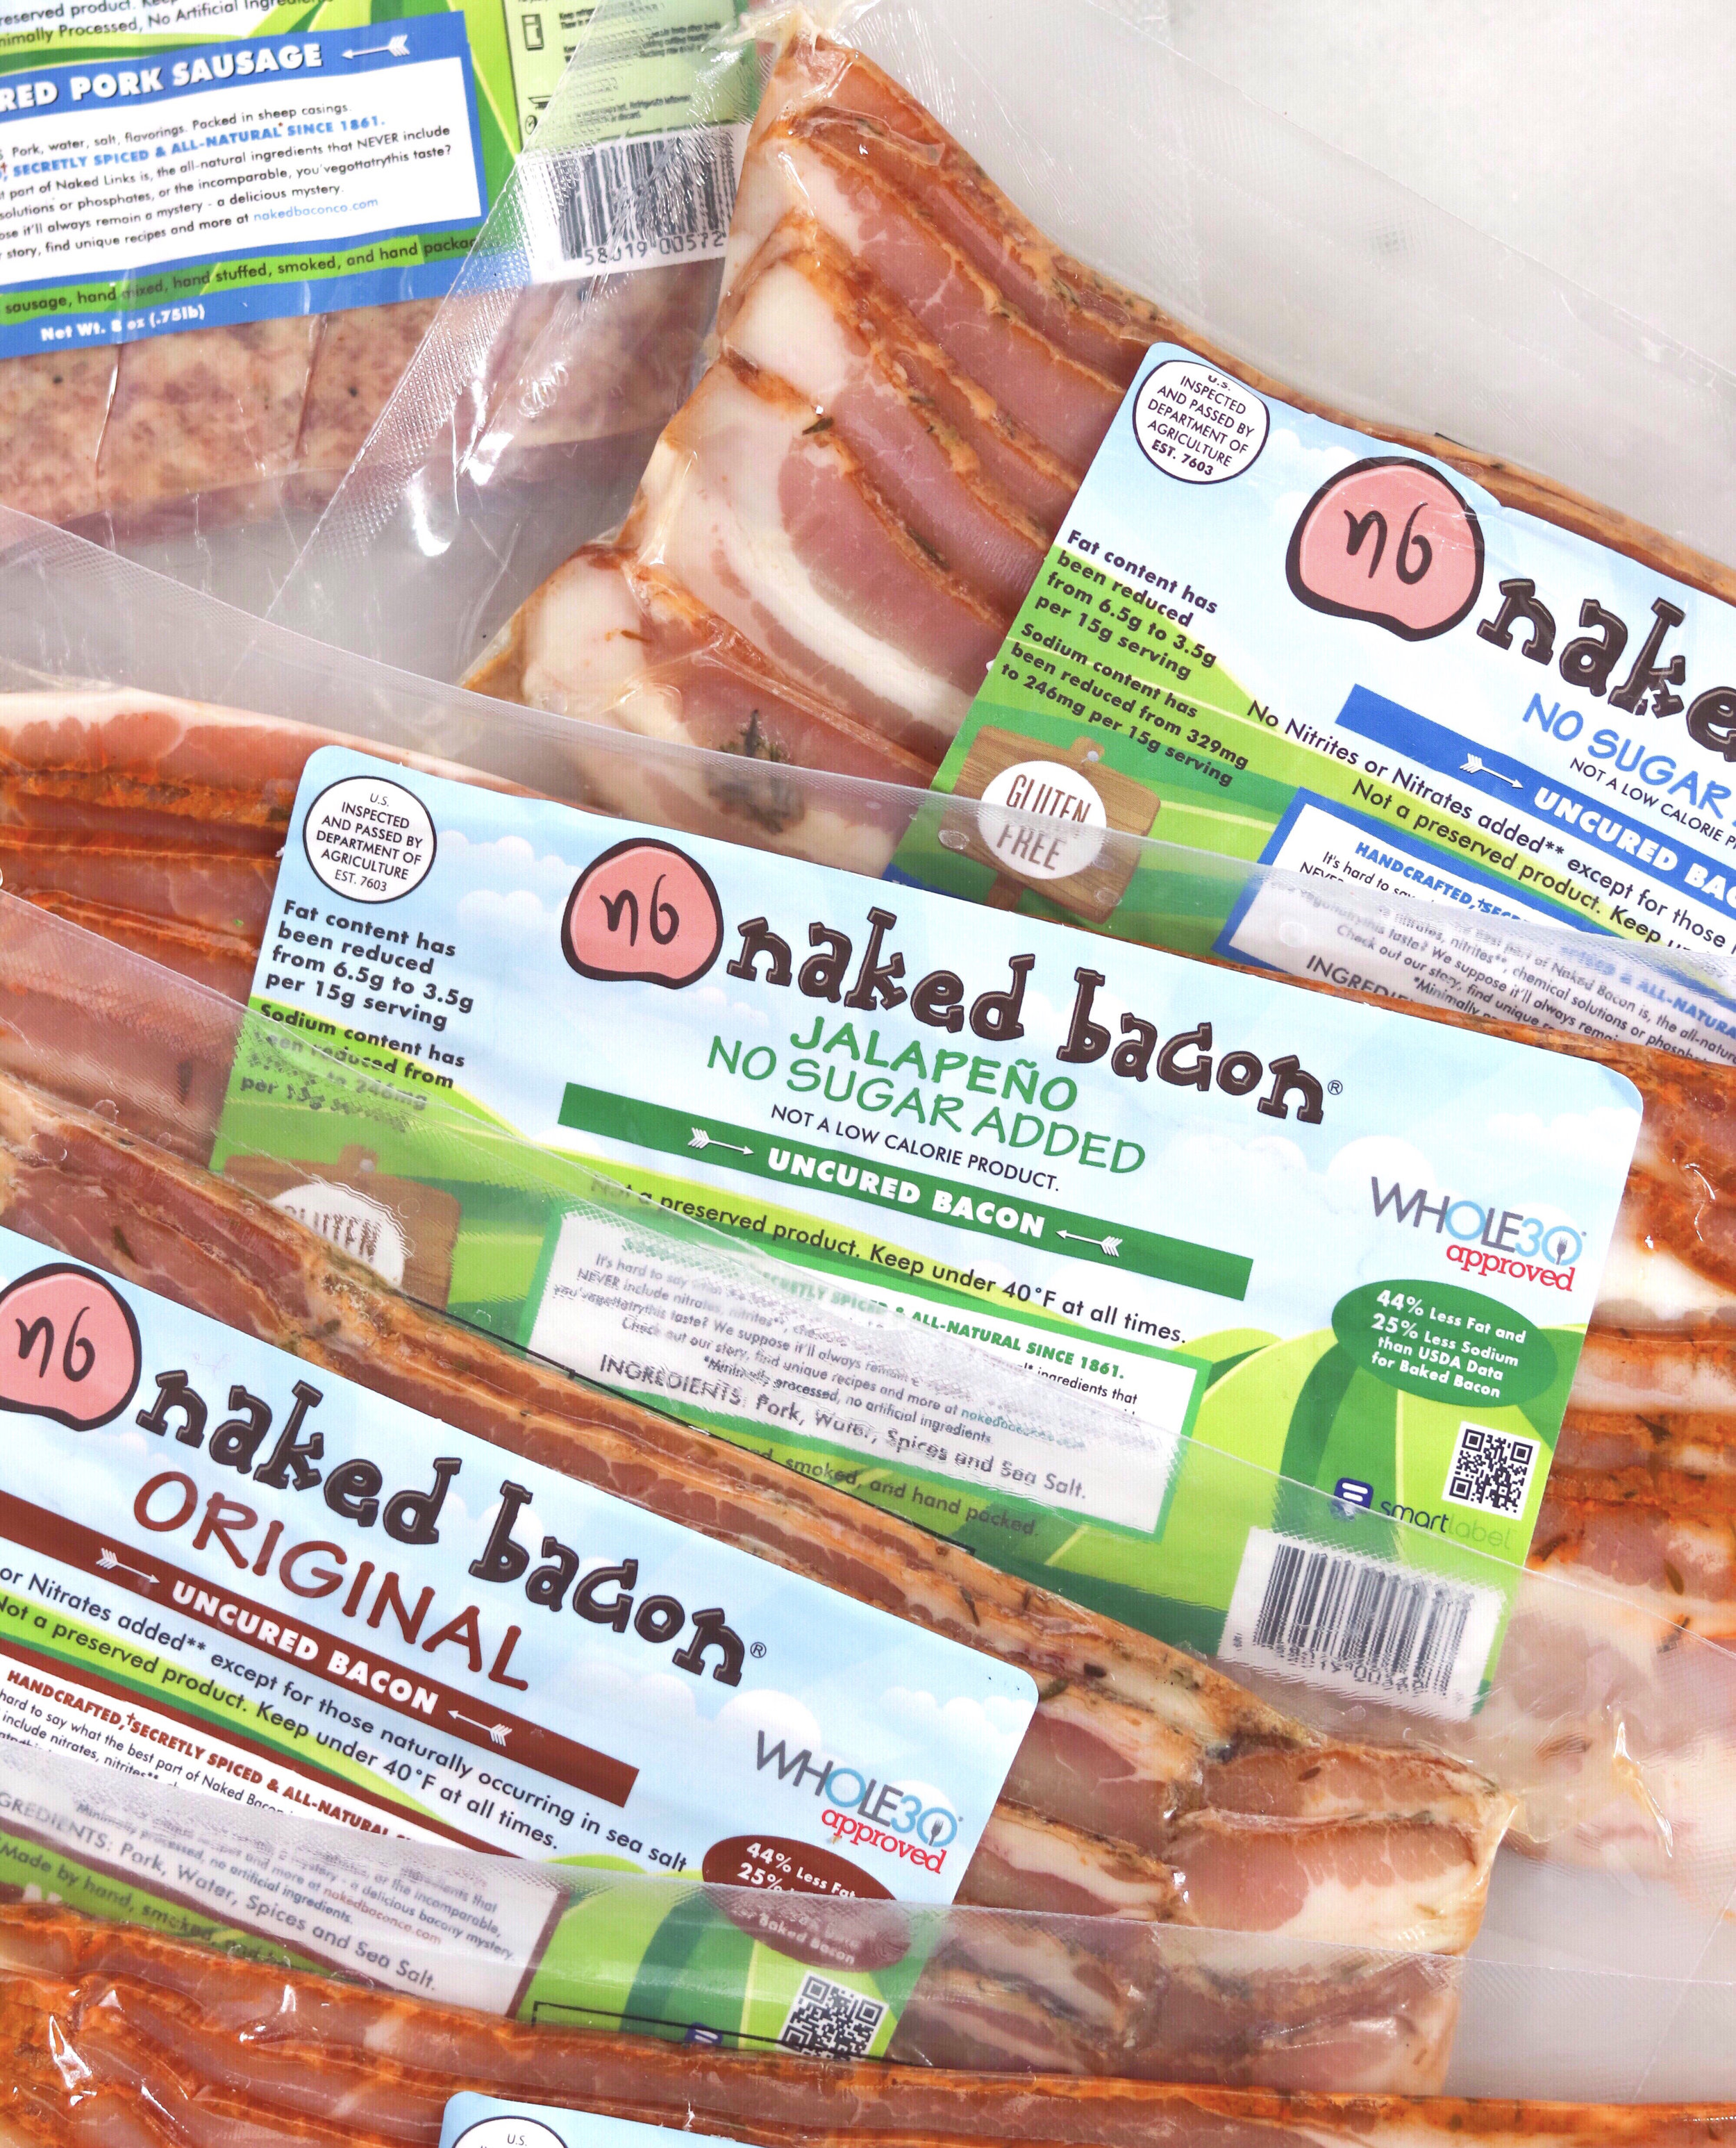 jalapeno bacon.JPG